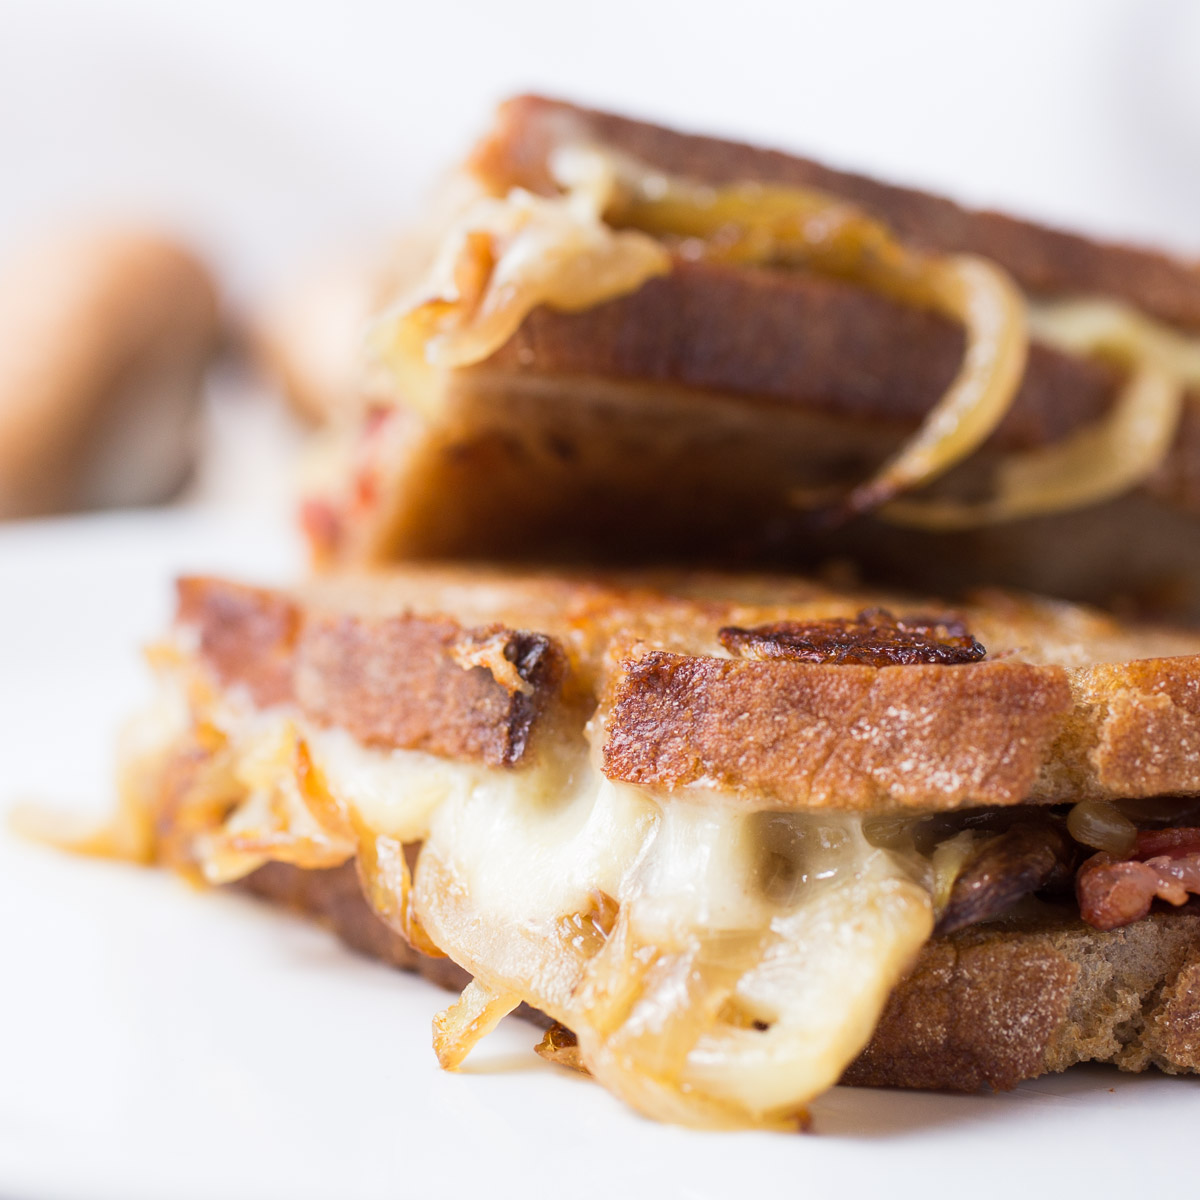 gruyere-onions-mushrooms-bacon-grilled-cheese-_MG_6226